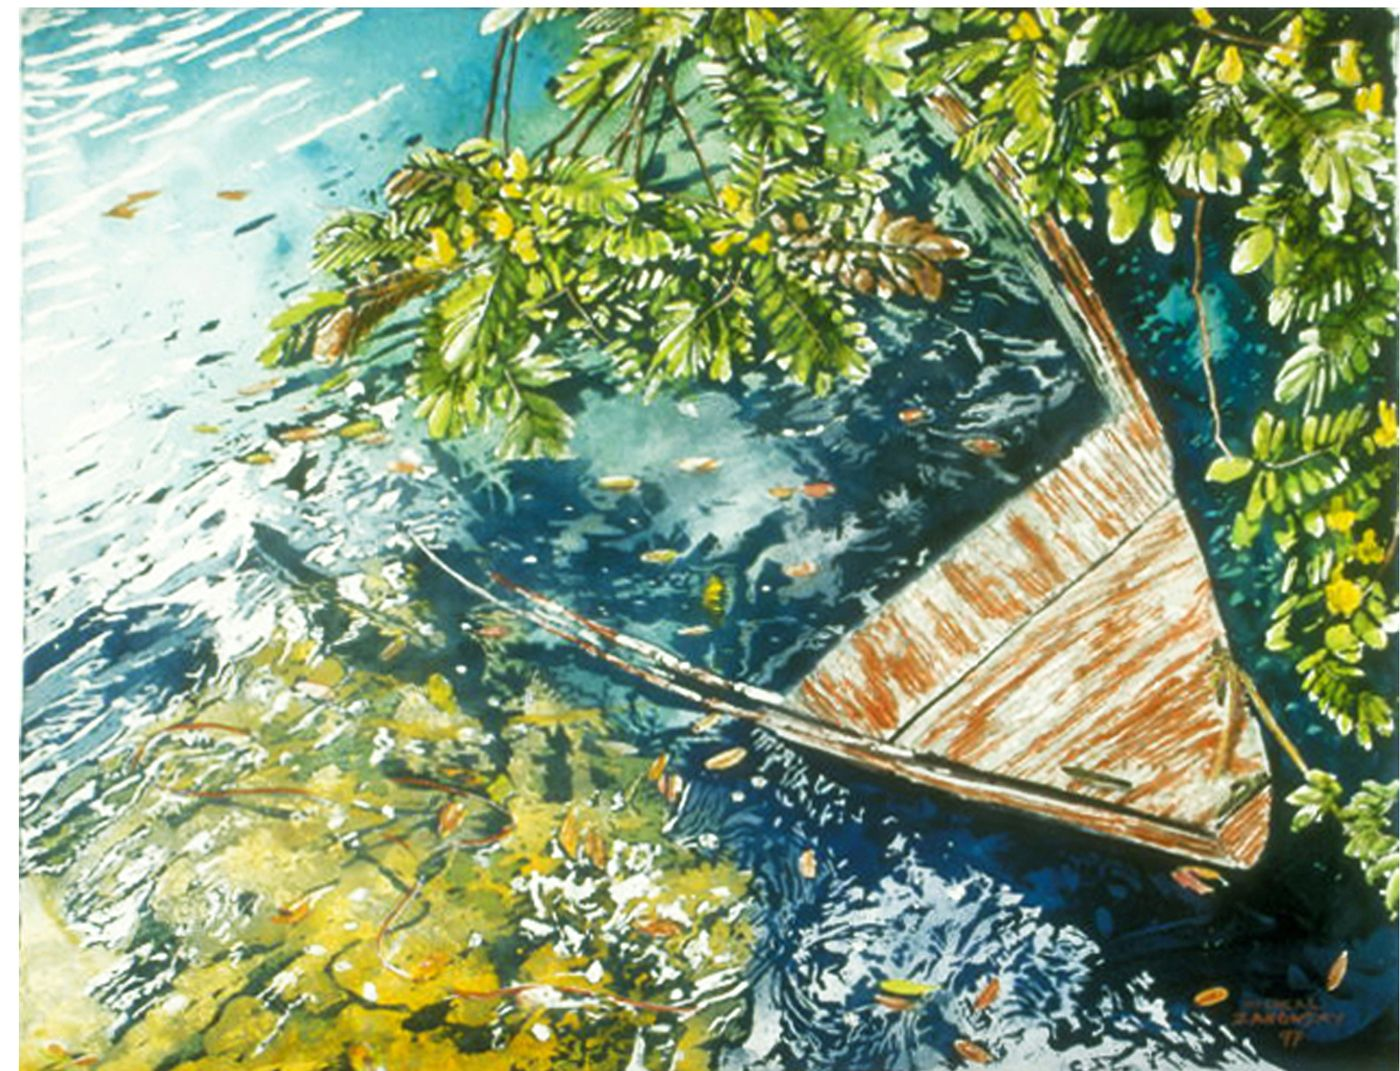 """boat full of rain 22"""" x 30"""" riddell bay bda  micheal zarowsky / watercolour on arches paper / (private collection)"""